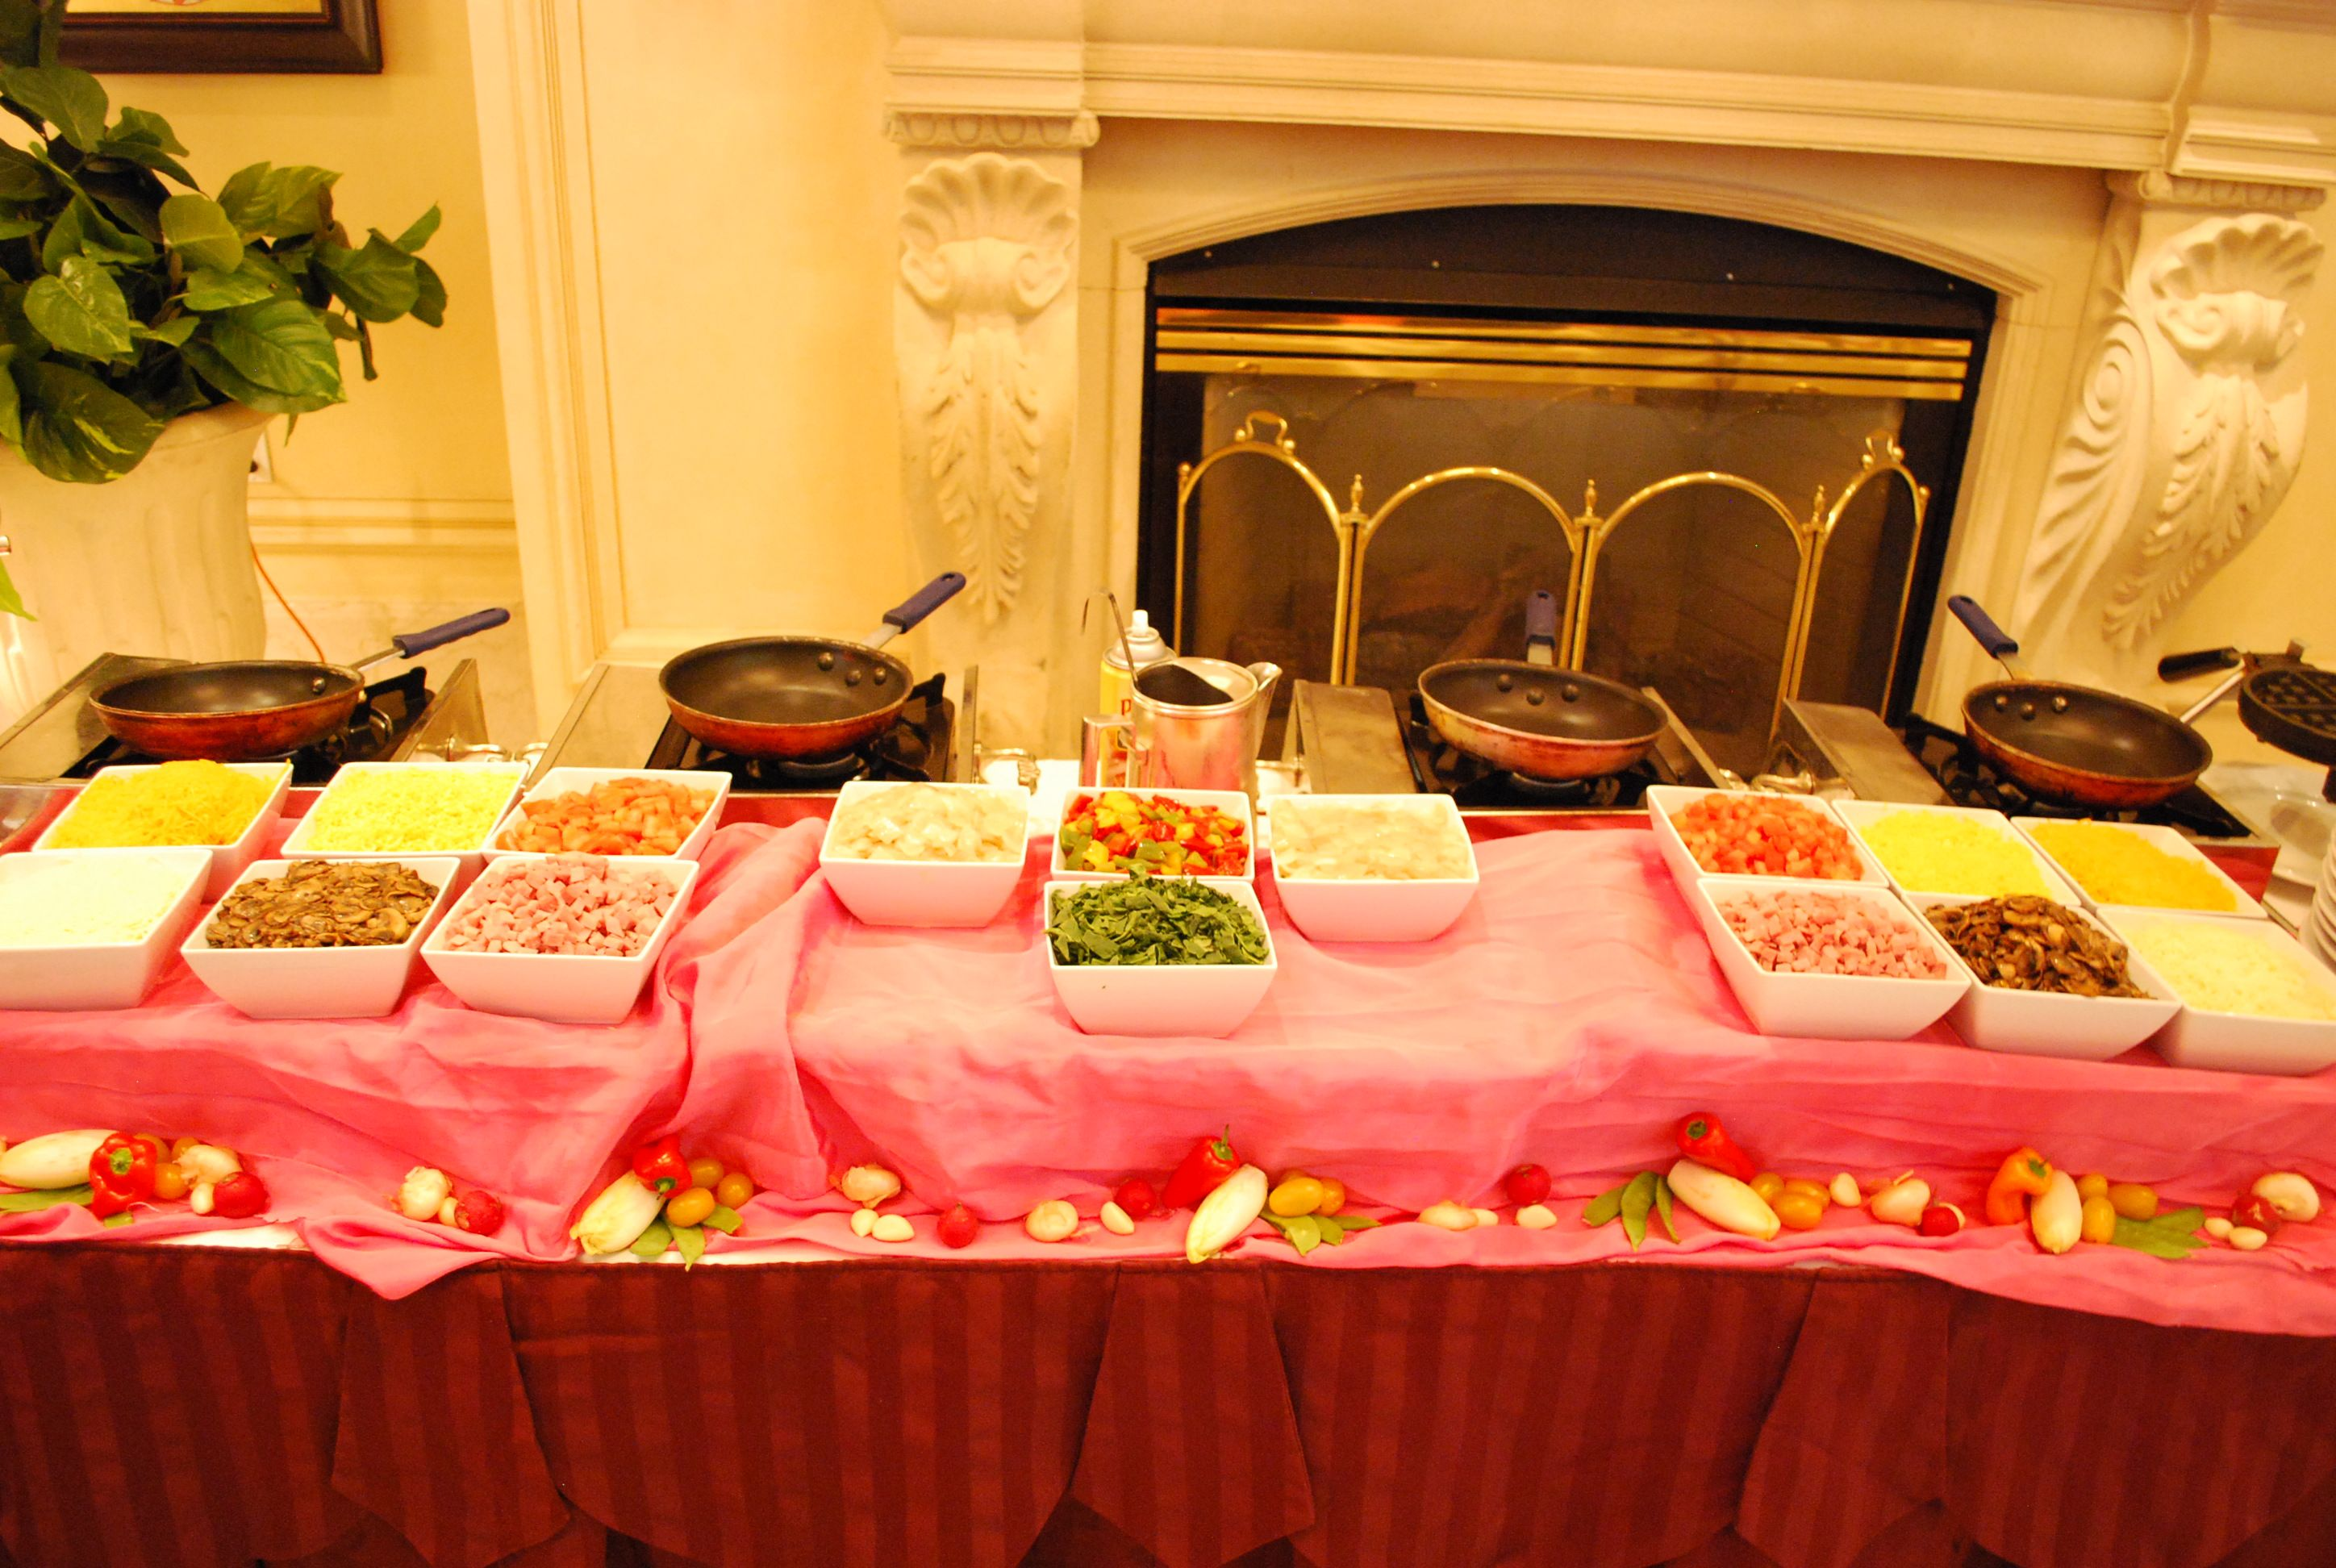 Made To Order Omelet Station At The Garden City Hotel Sunday